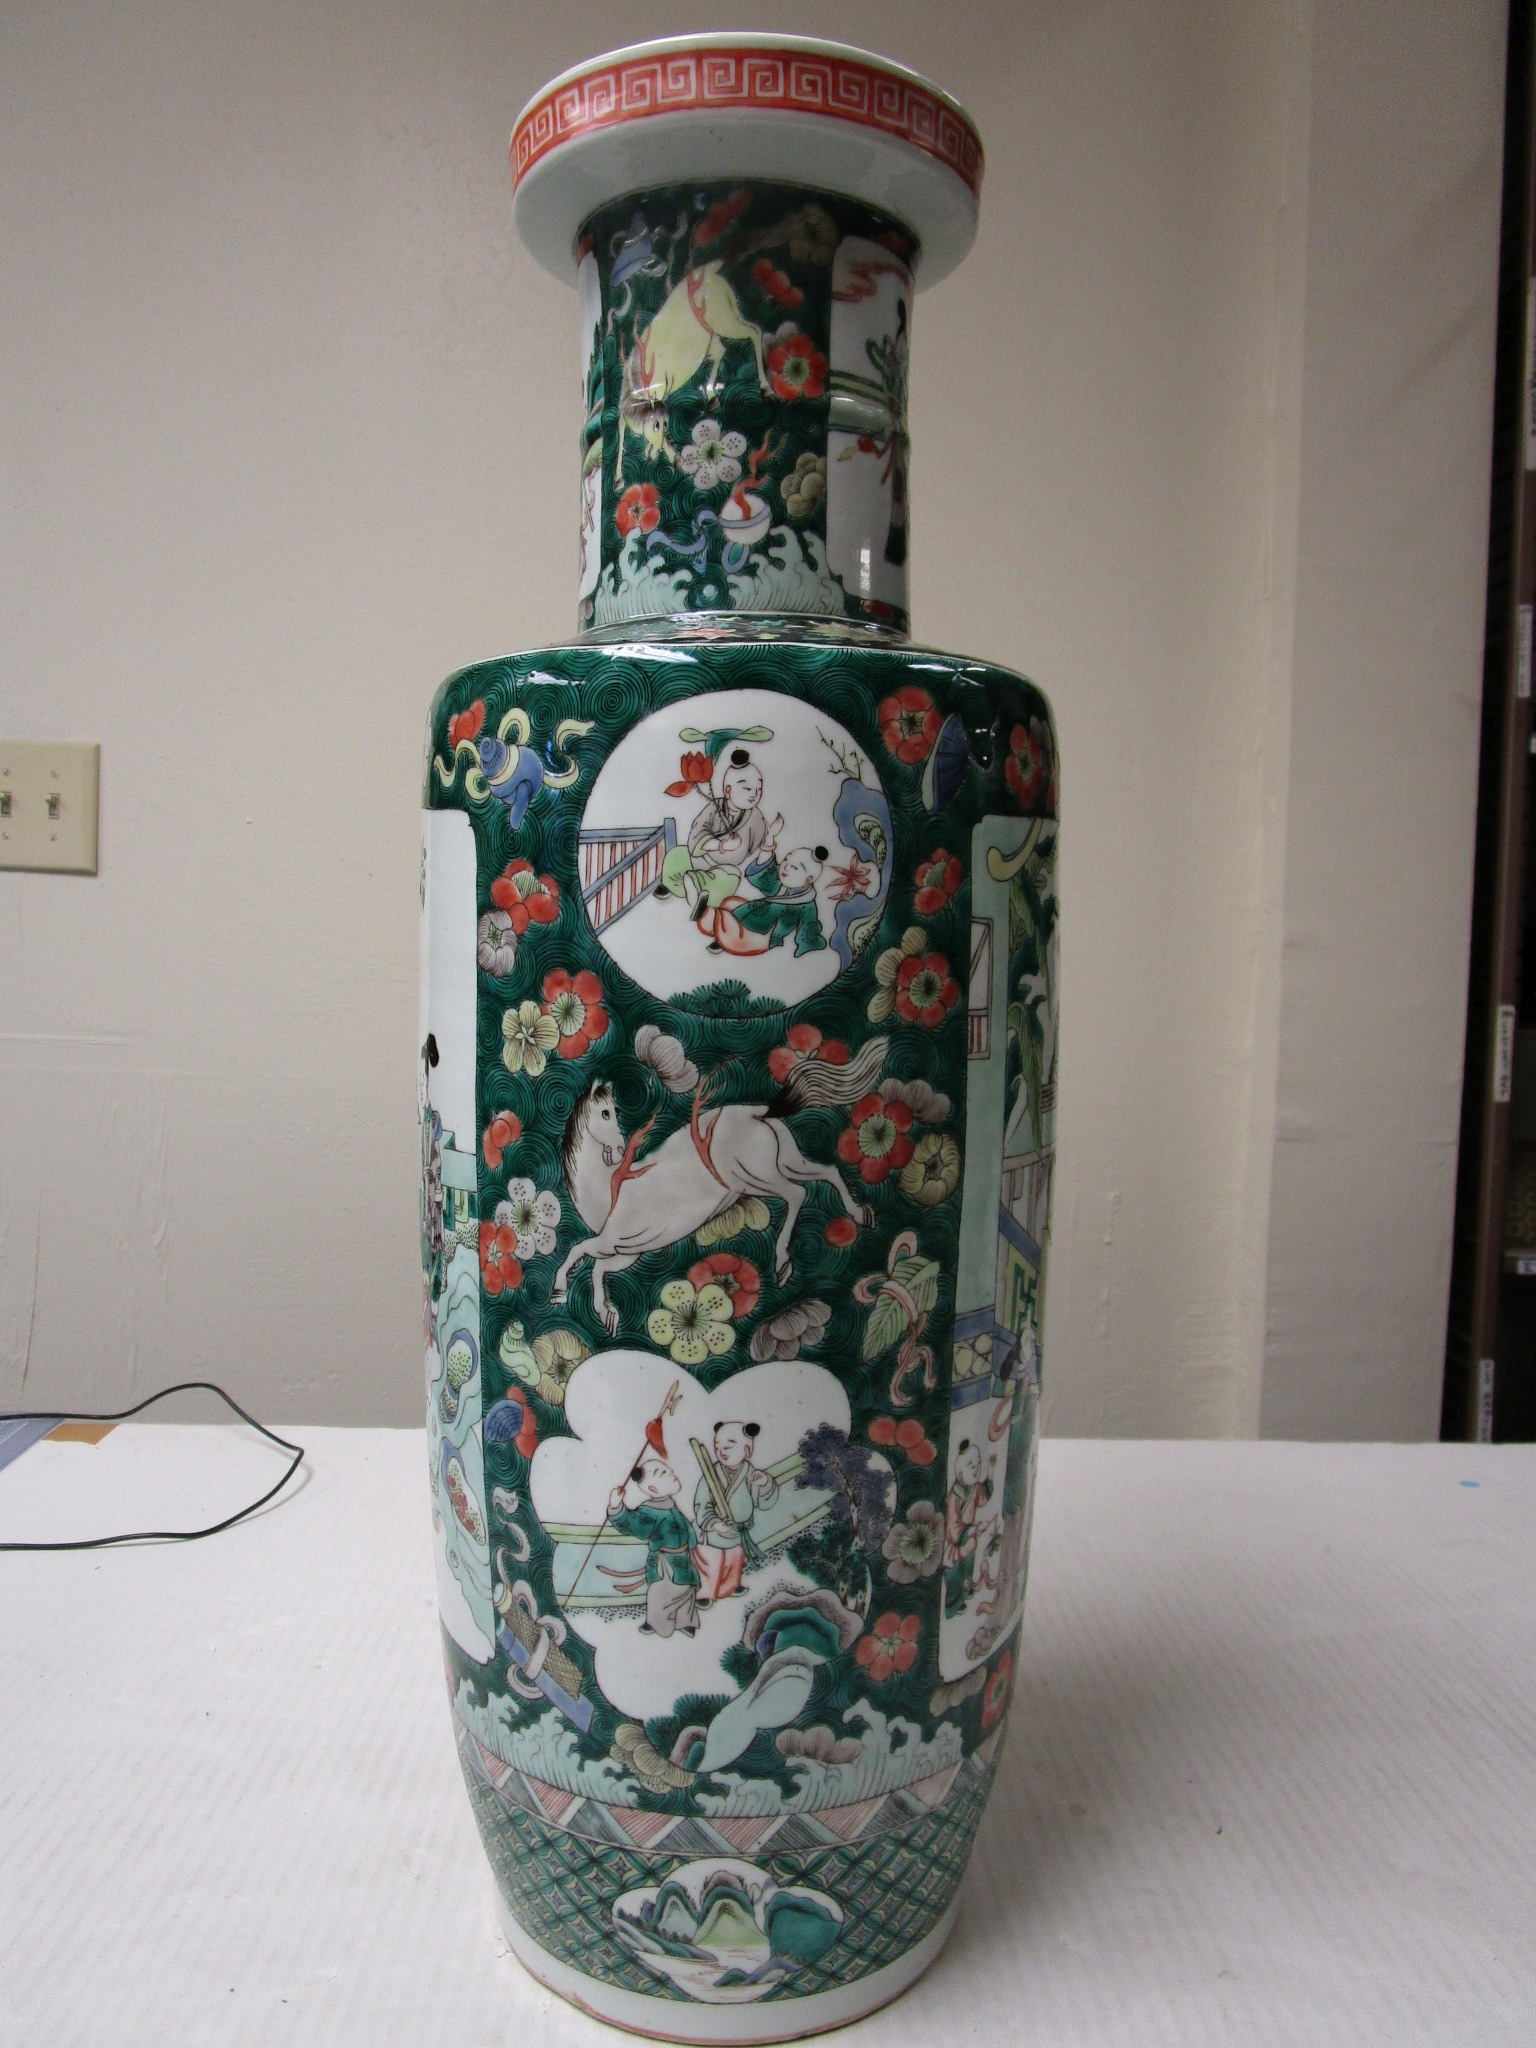 Lot 249 - A Chinese Famille Verte Enameled Rouleau Vase Late Qing dynasty